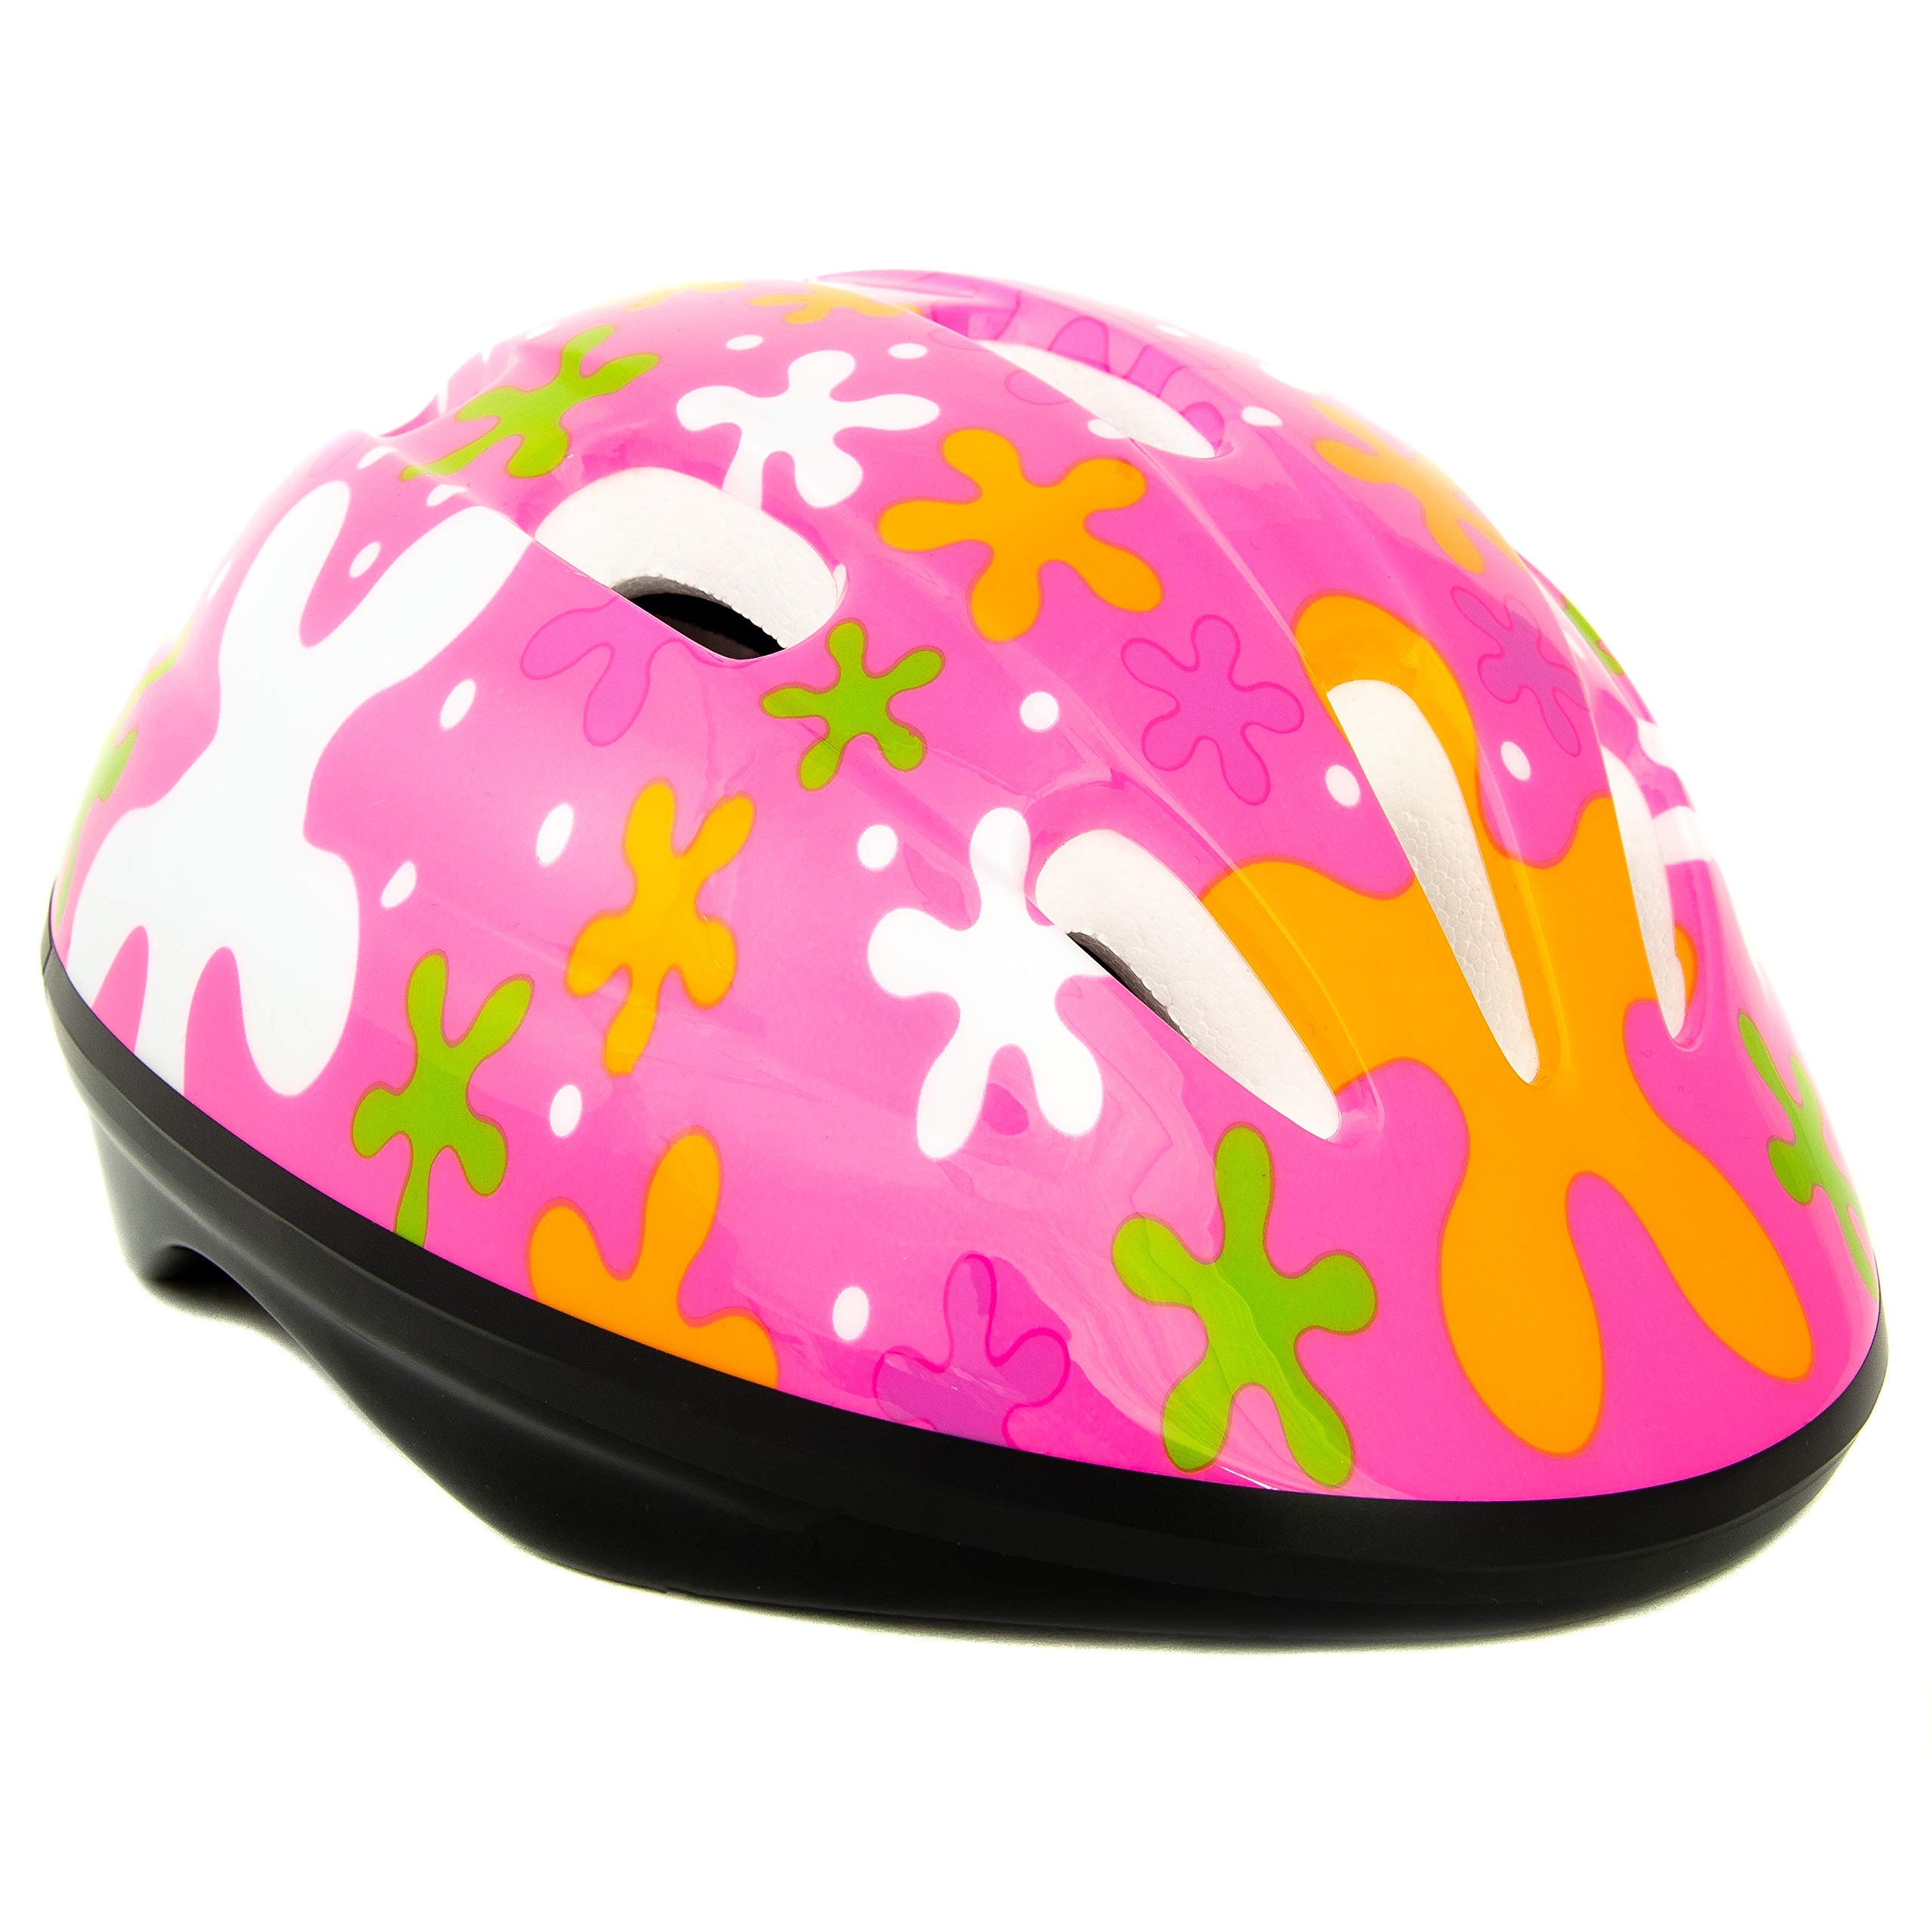 Baby Solo Toddler Bike Helmet   Lightweight, Safe, Adjustable, Vented, CSPC Certified   2-5 Years Old Boy and Girl Colors (Cutie Pink)